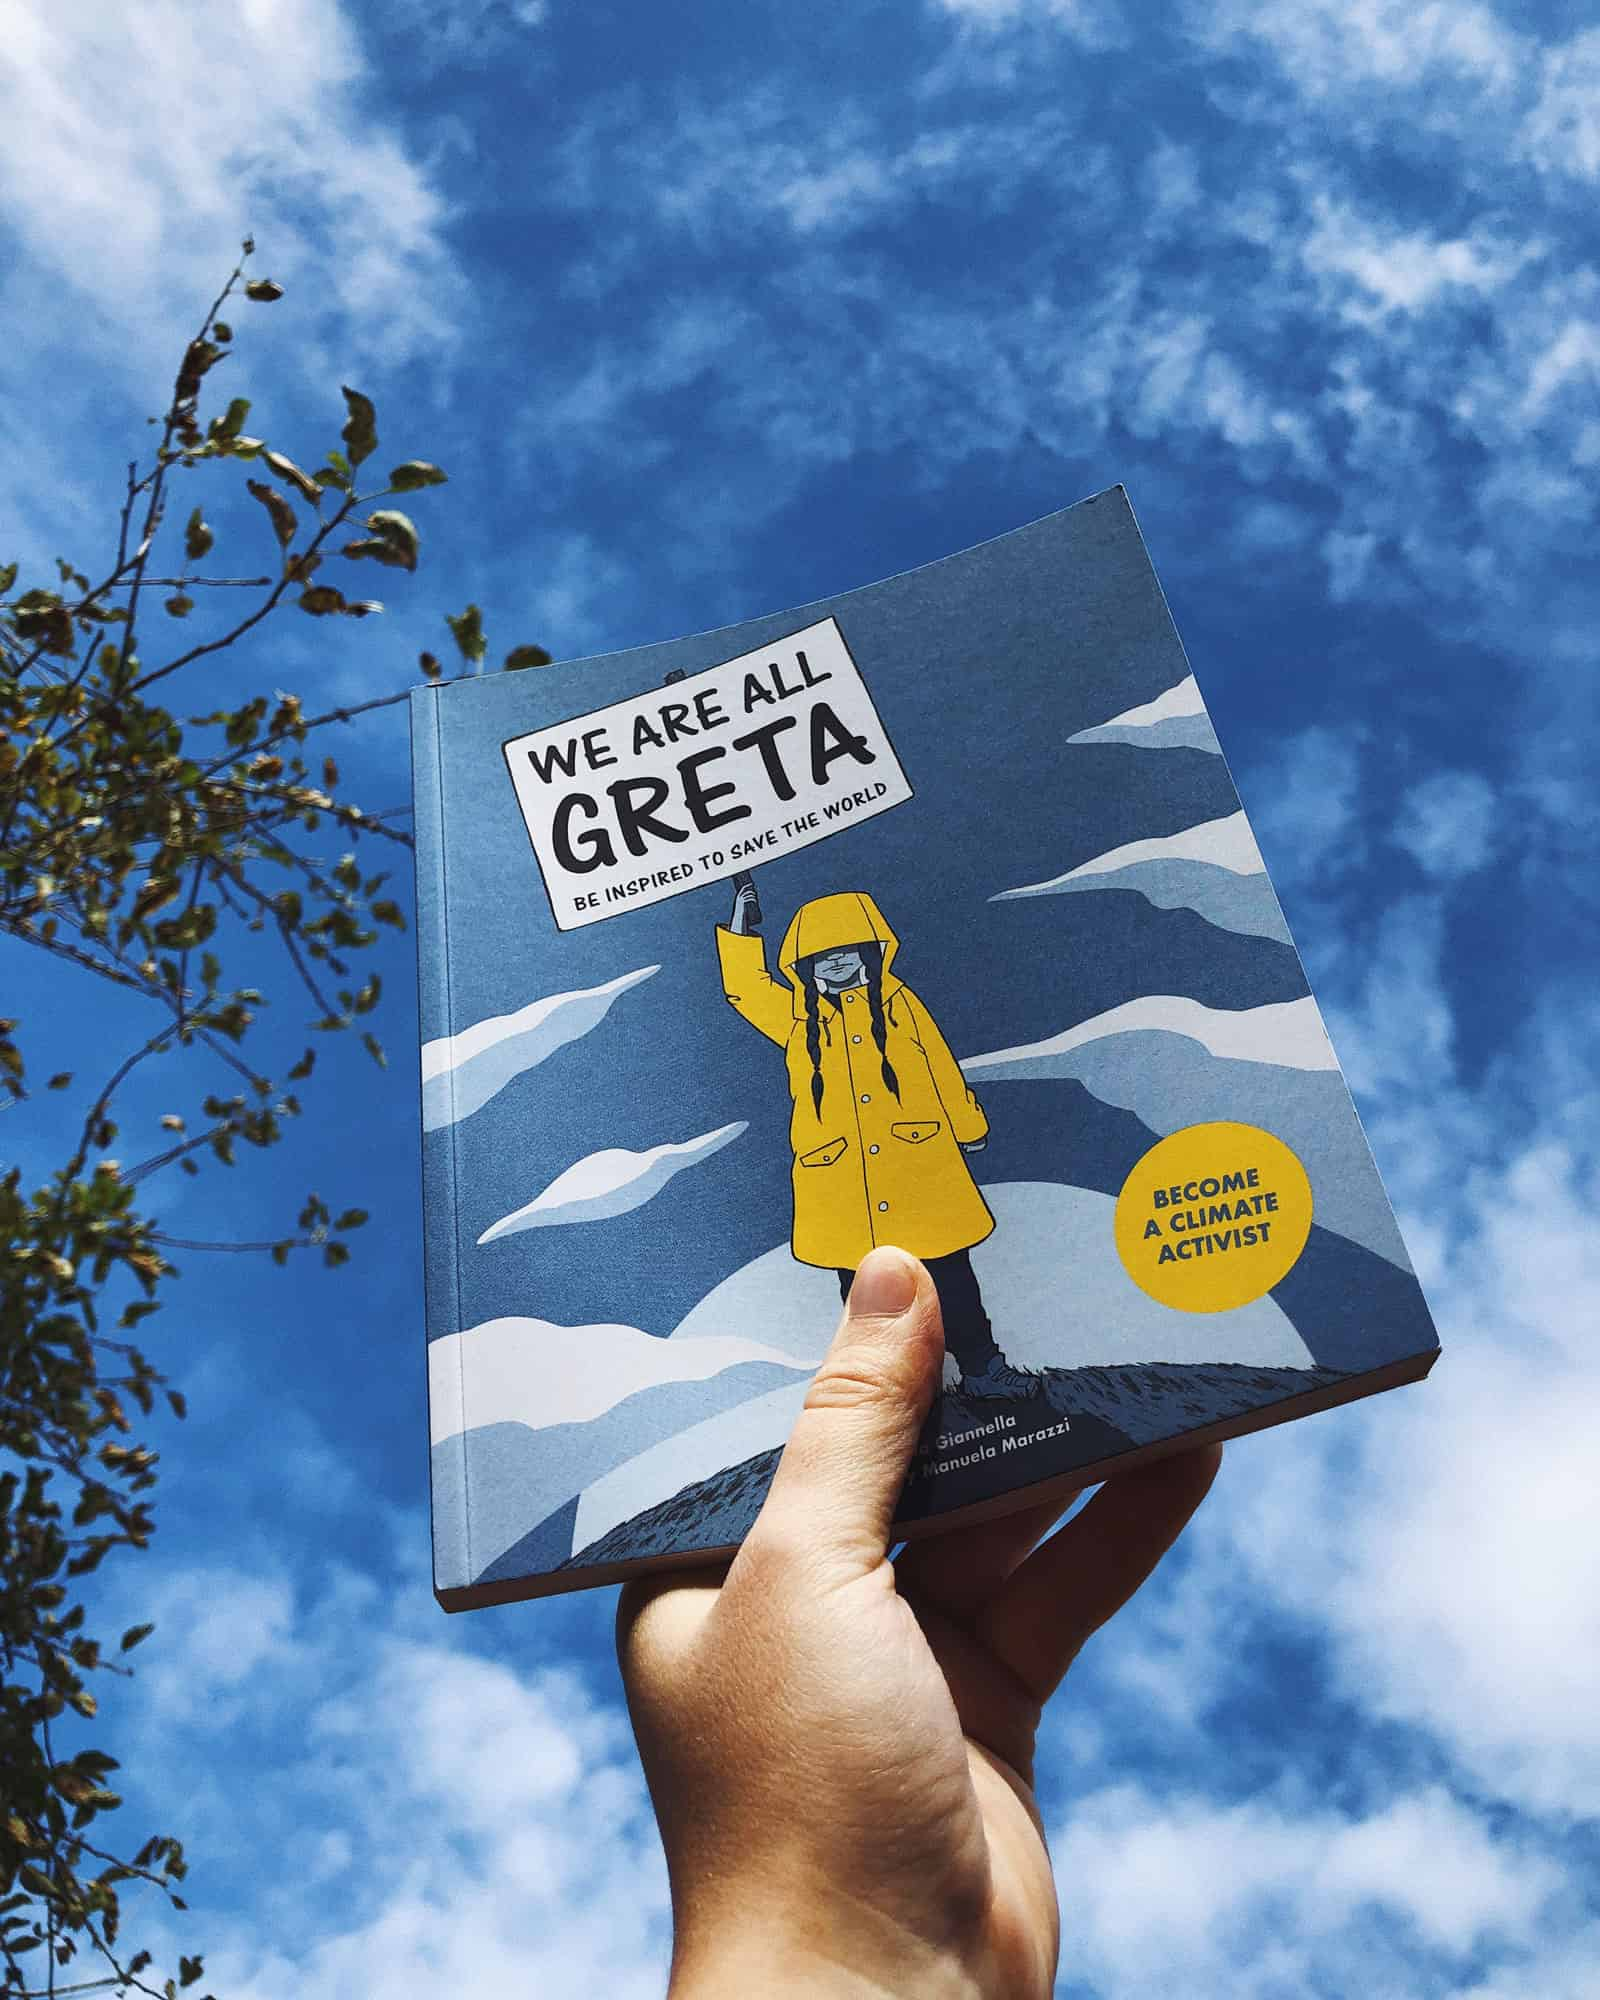 We Are All Greta - Be Inspired to Change the World with Greta Thunberg, Valentina Giannella, illustrated by Manuela Marazzi, Laurence King